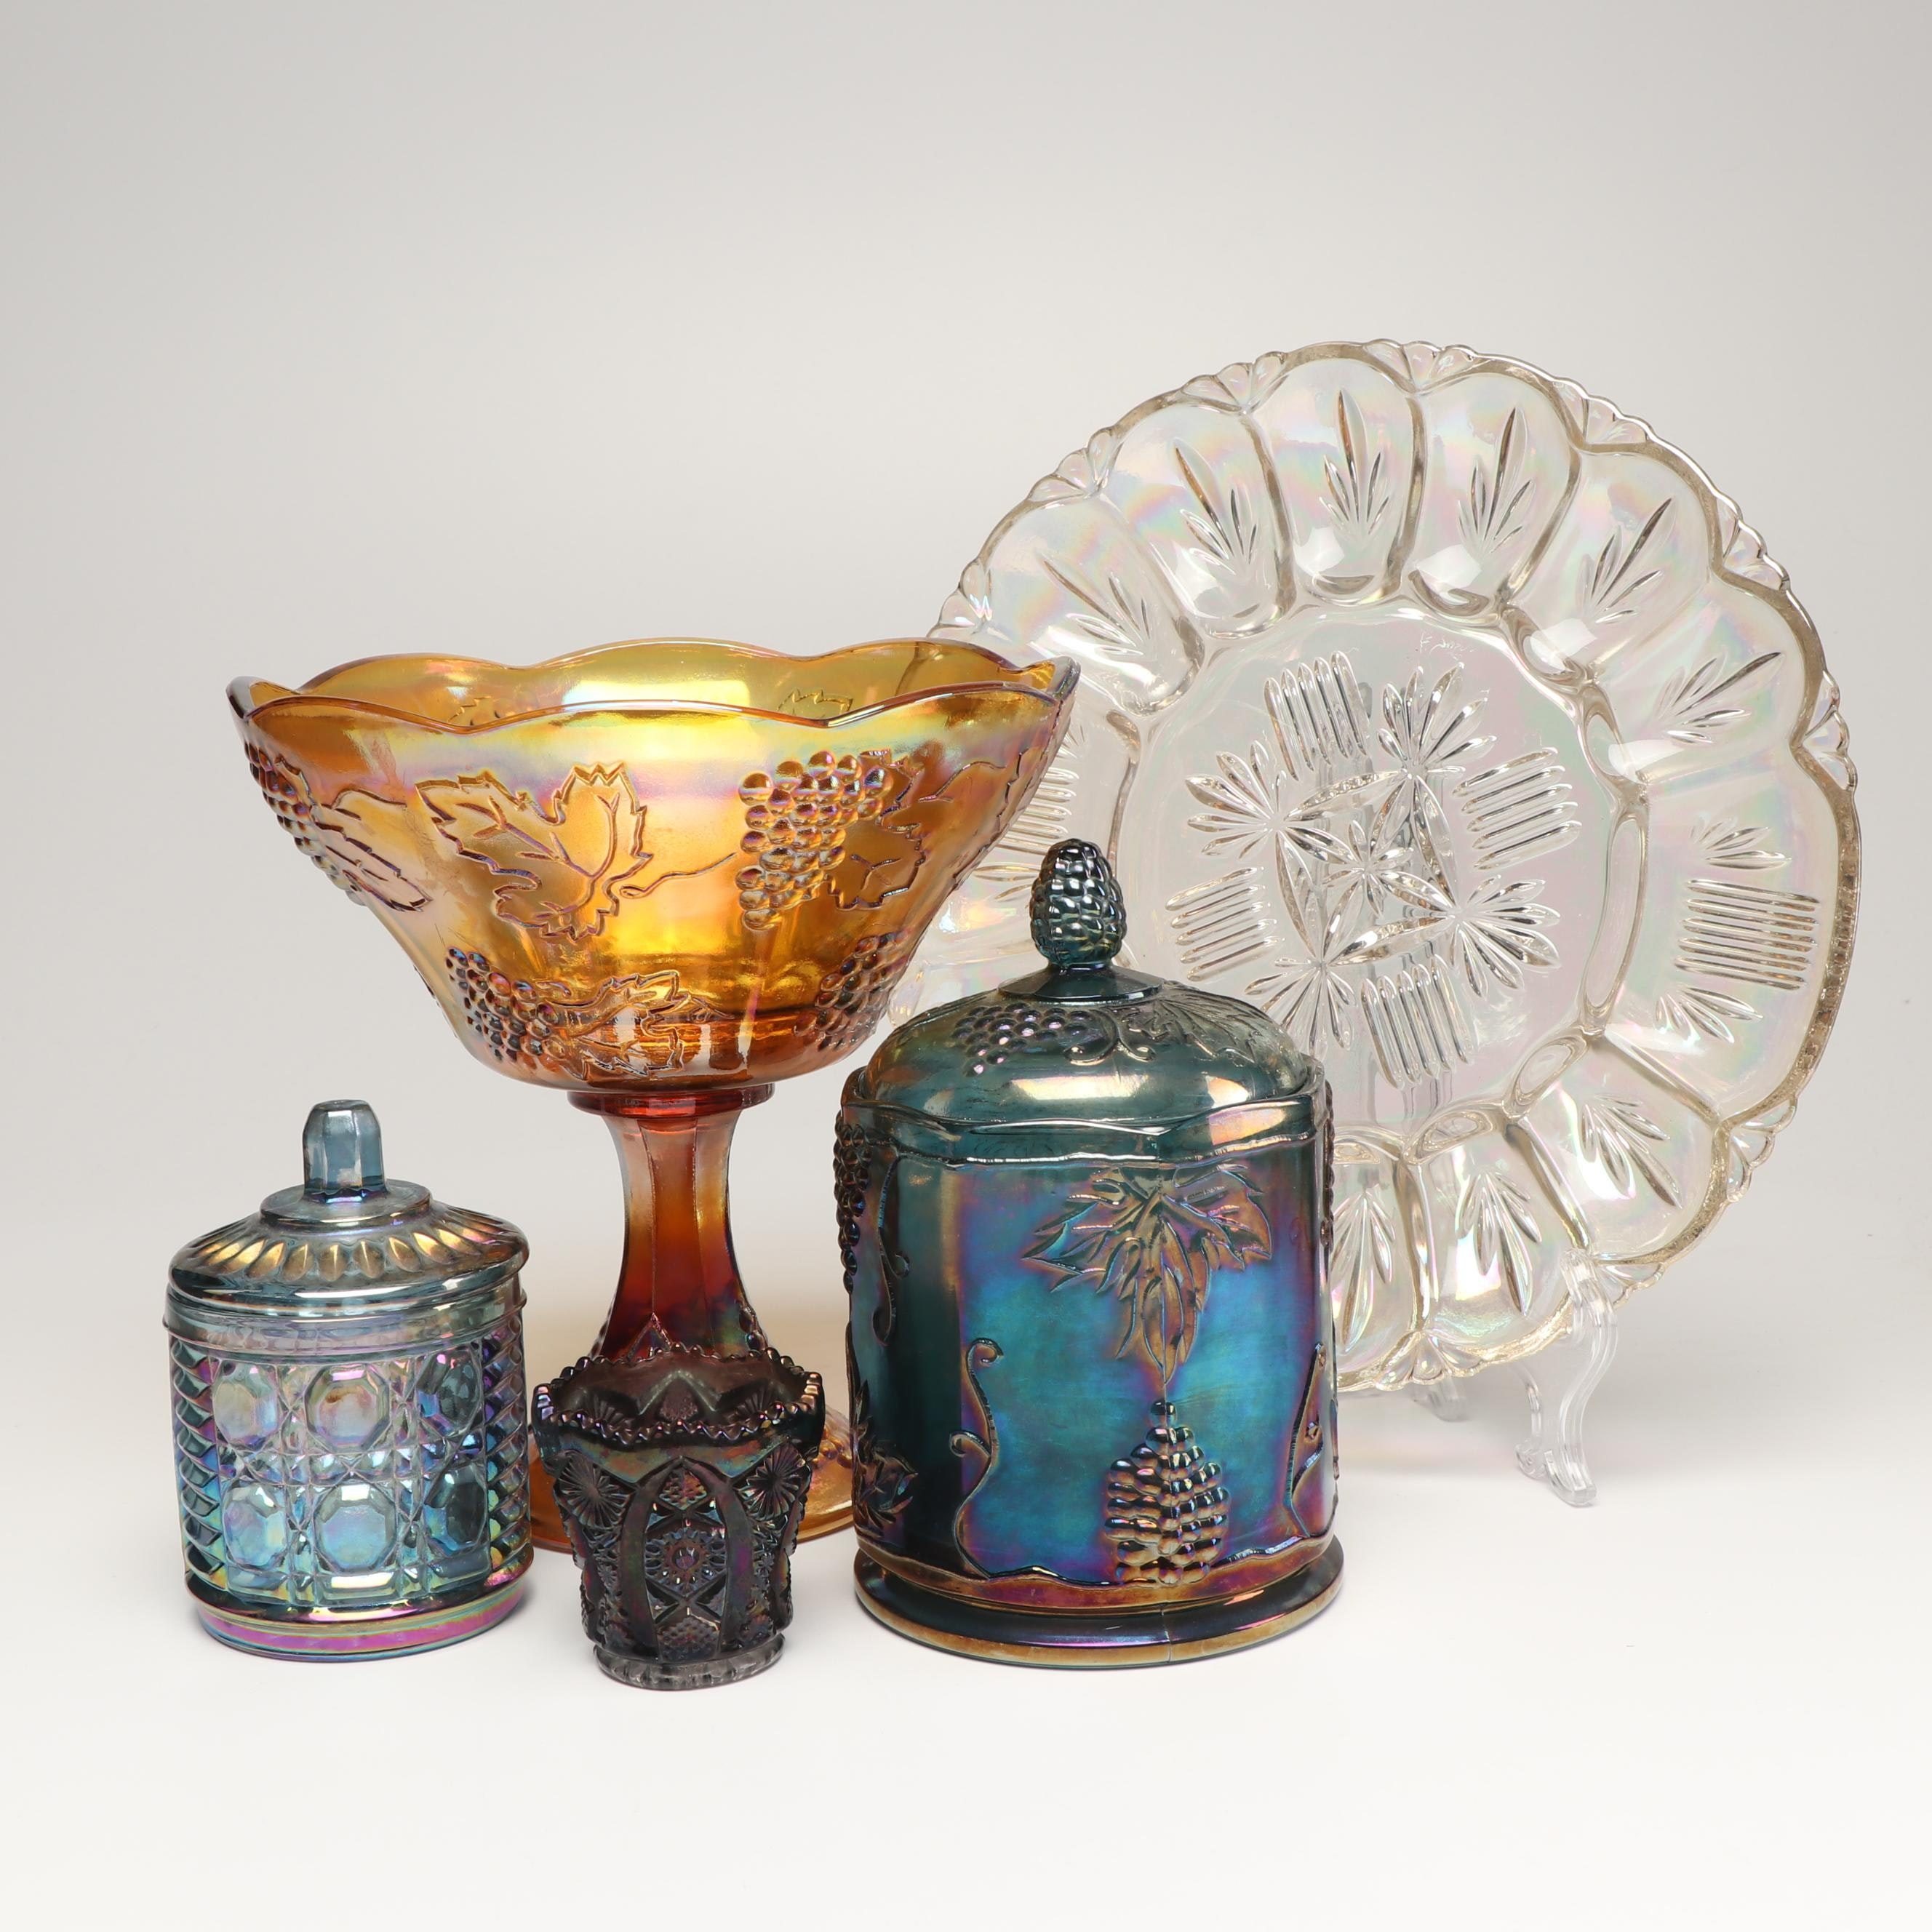 Carnival Tableware Pieces Including Imperial, Federal and Indiana